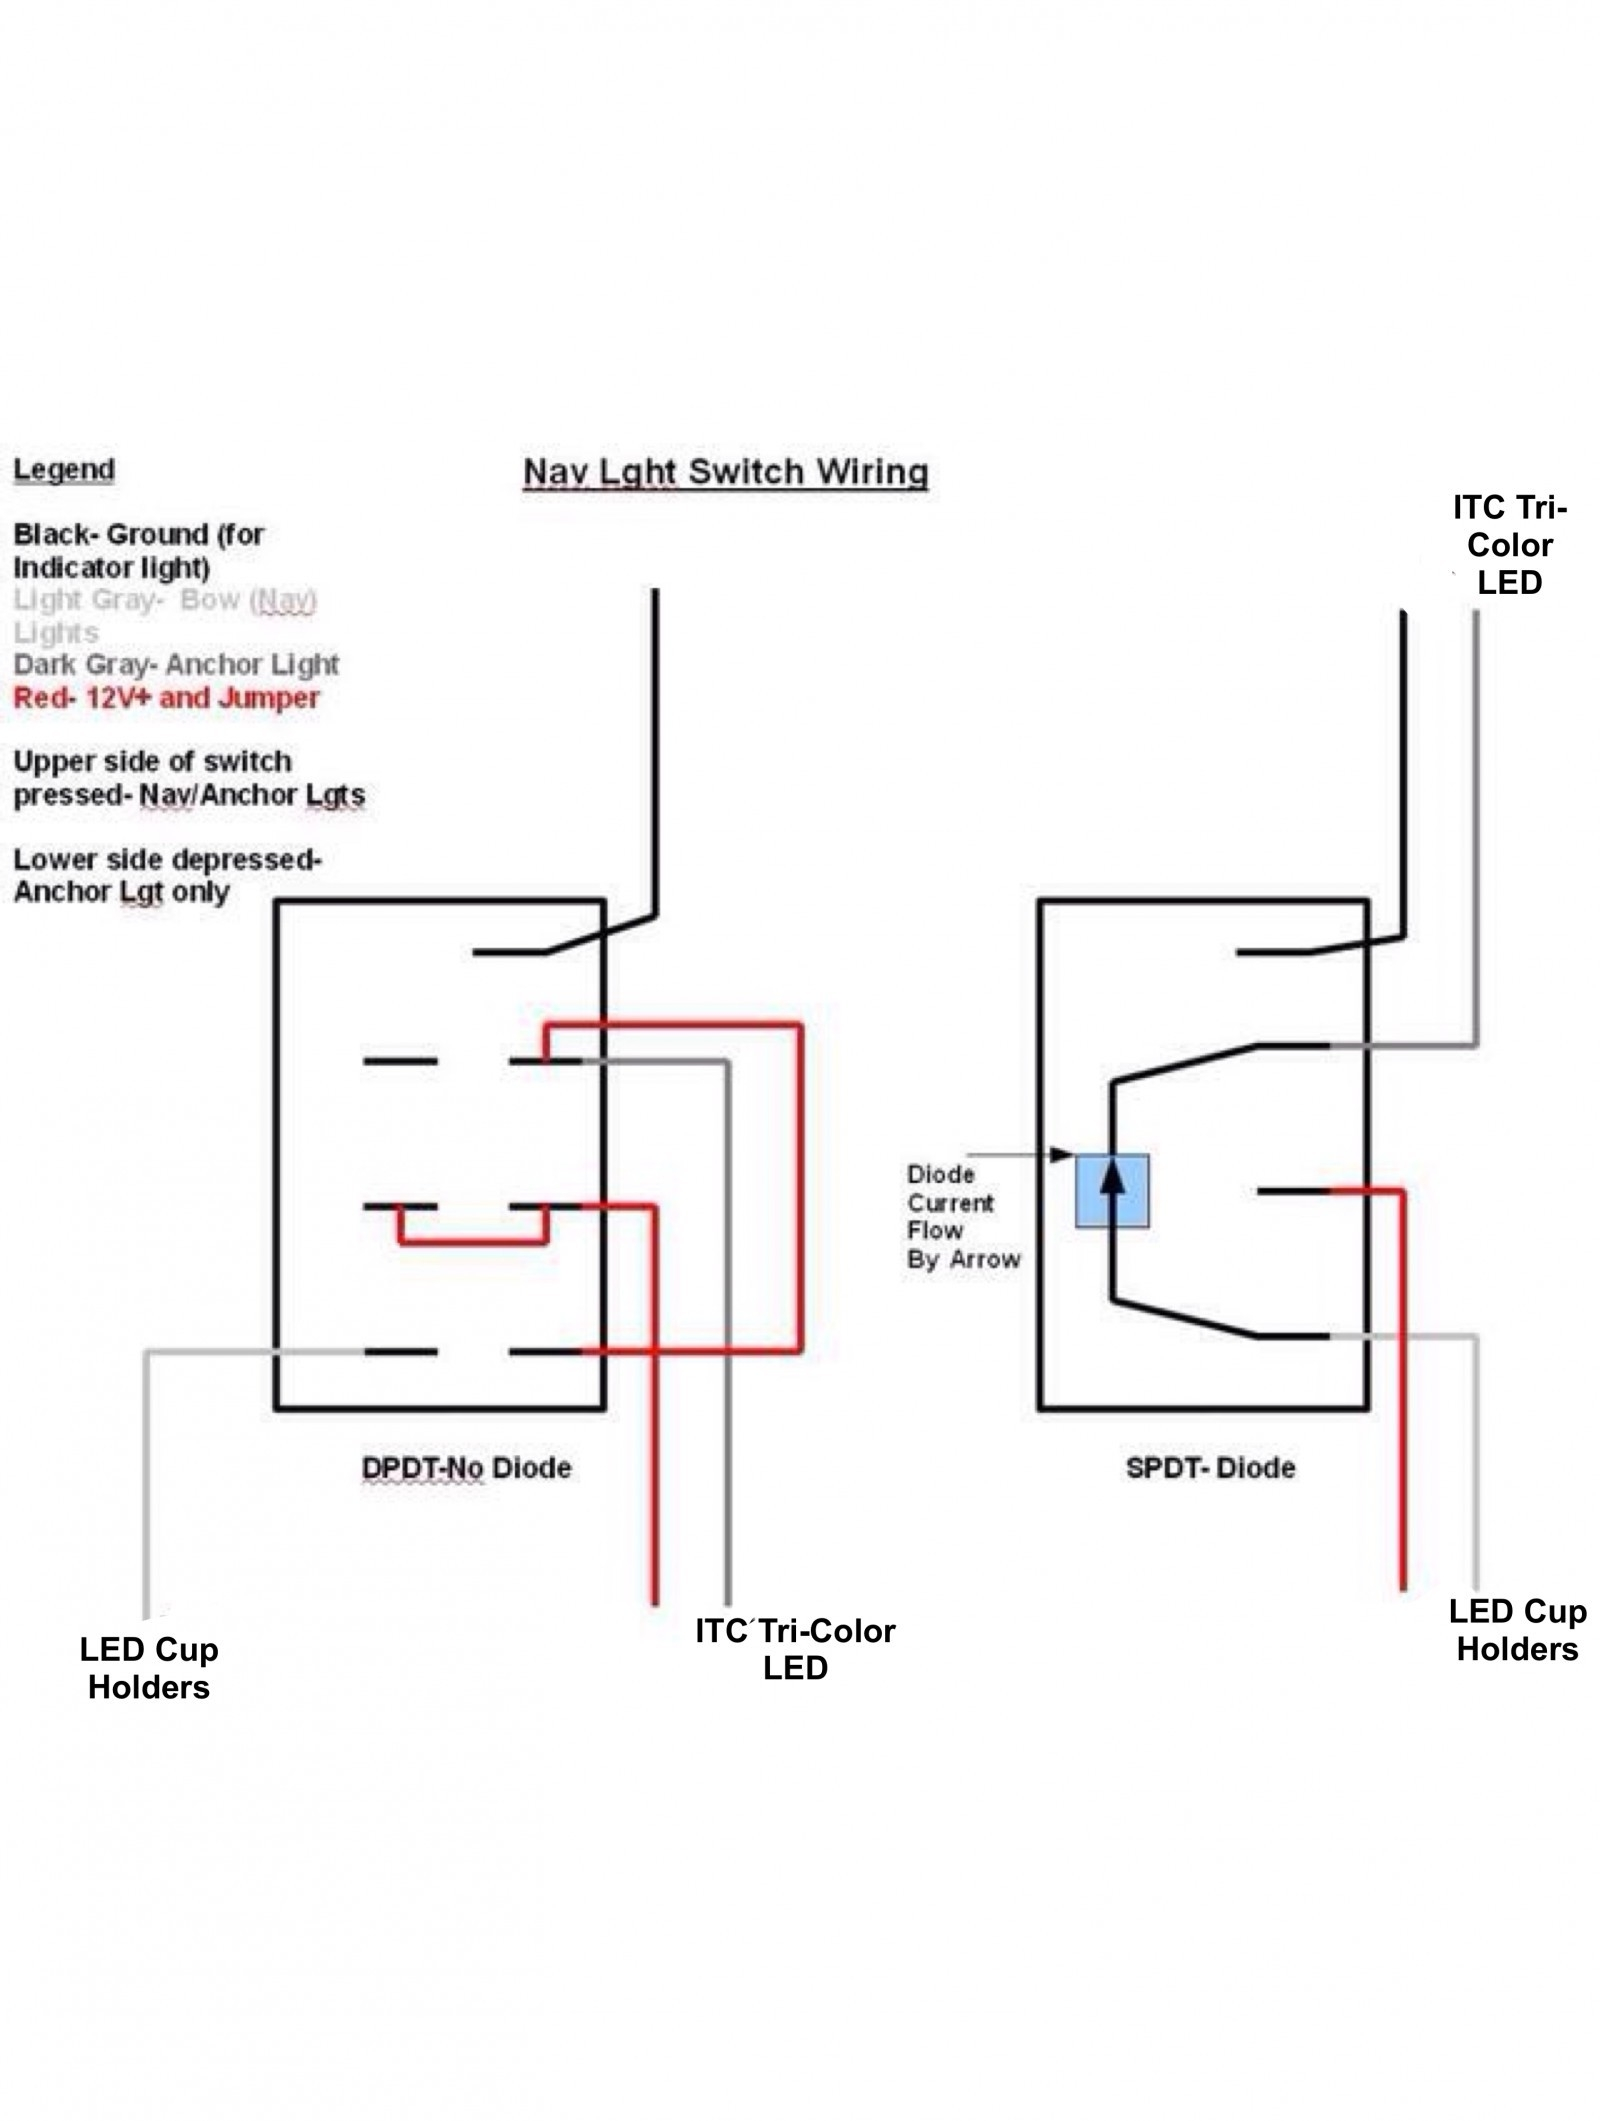 rib relay dpdt wiring diagram